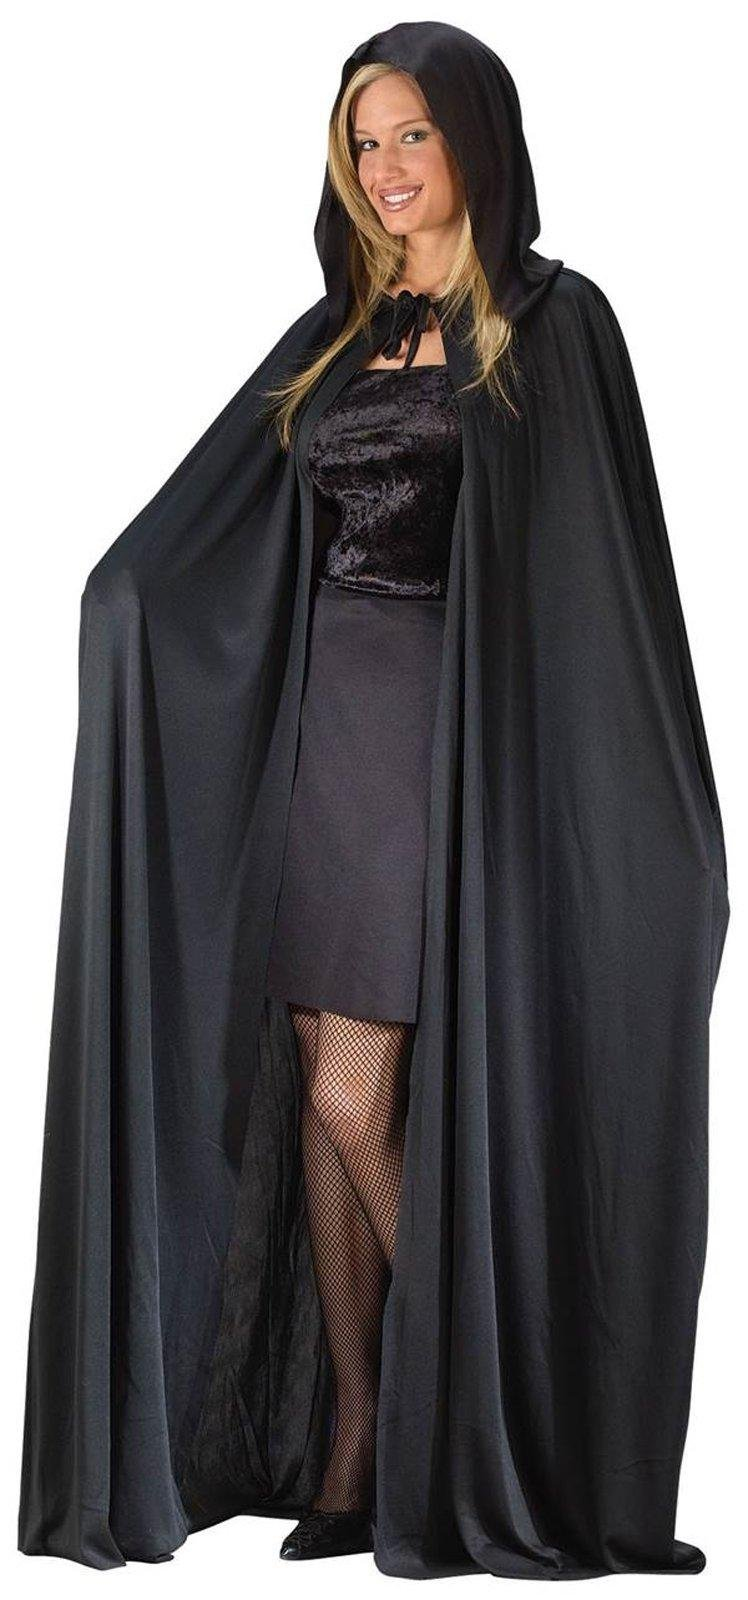 Adult 68'' Black Hooded Cape - Black by Fun World Costumes (Image #1)